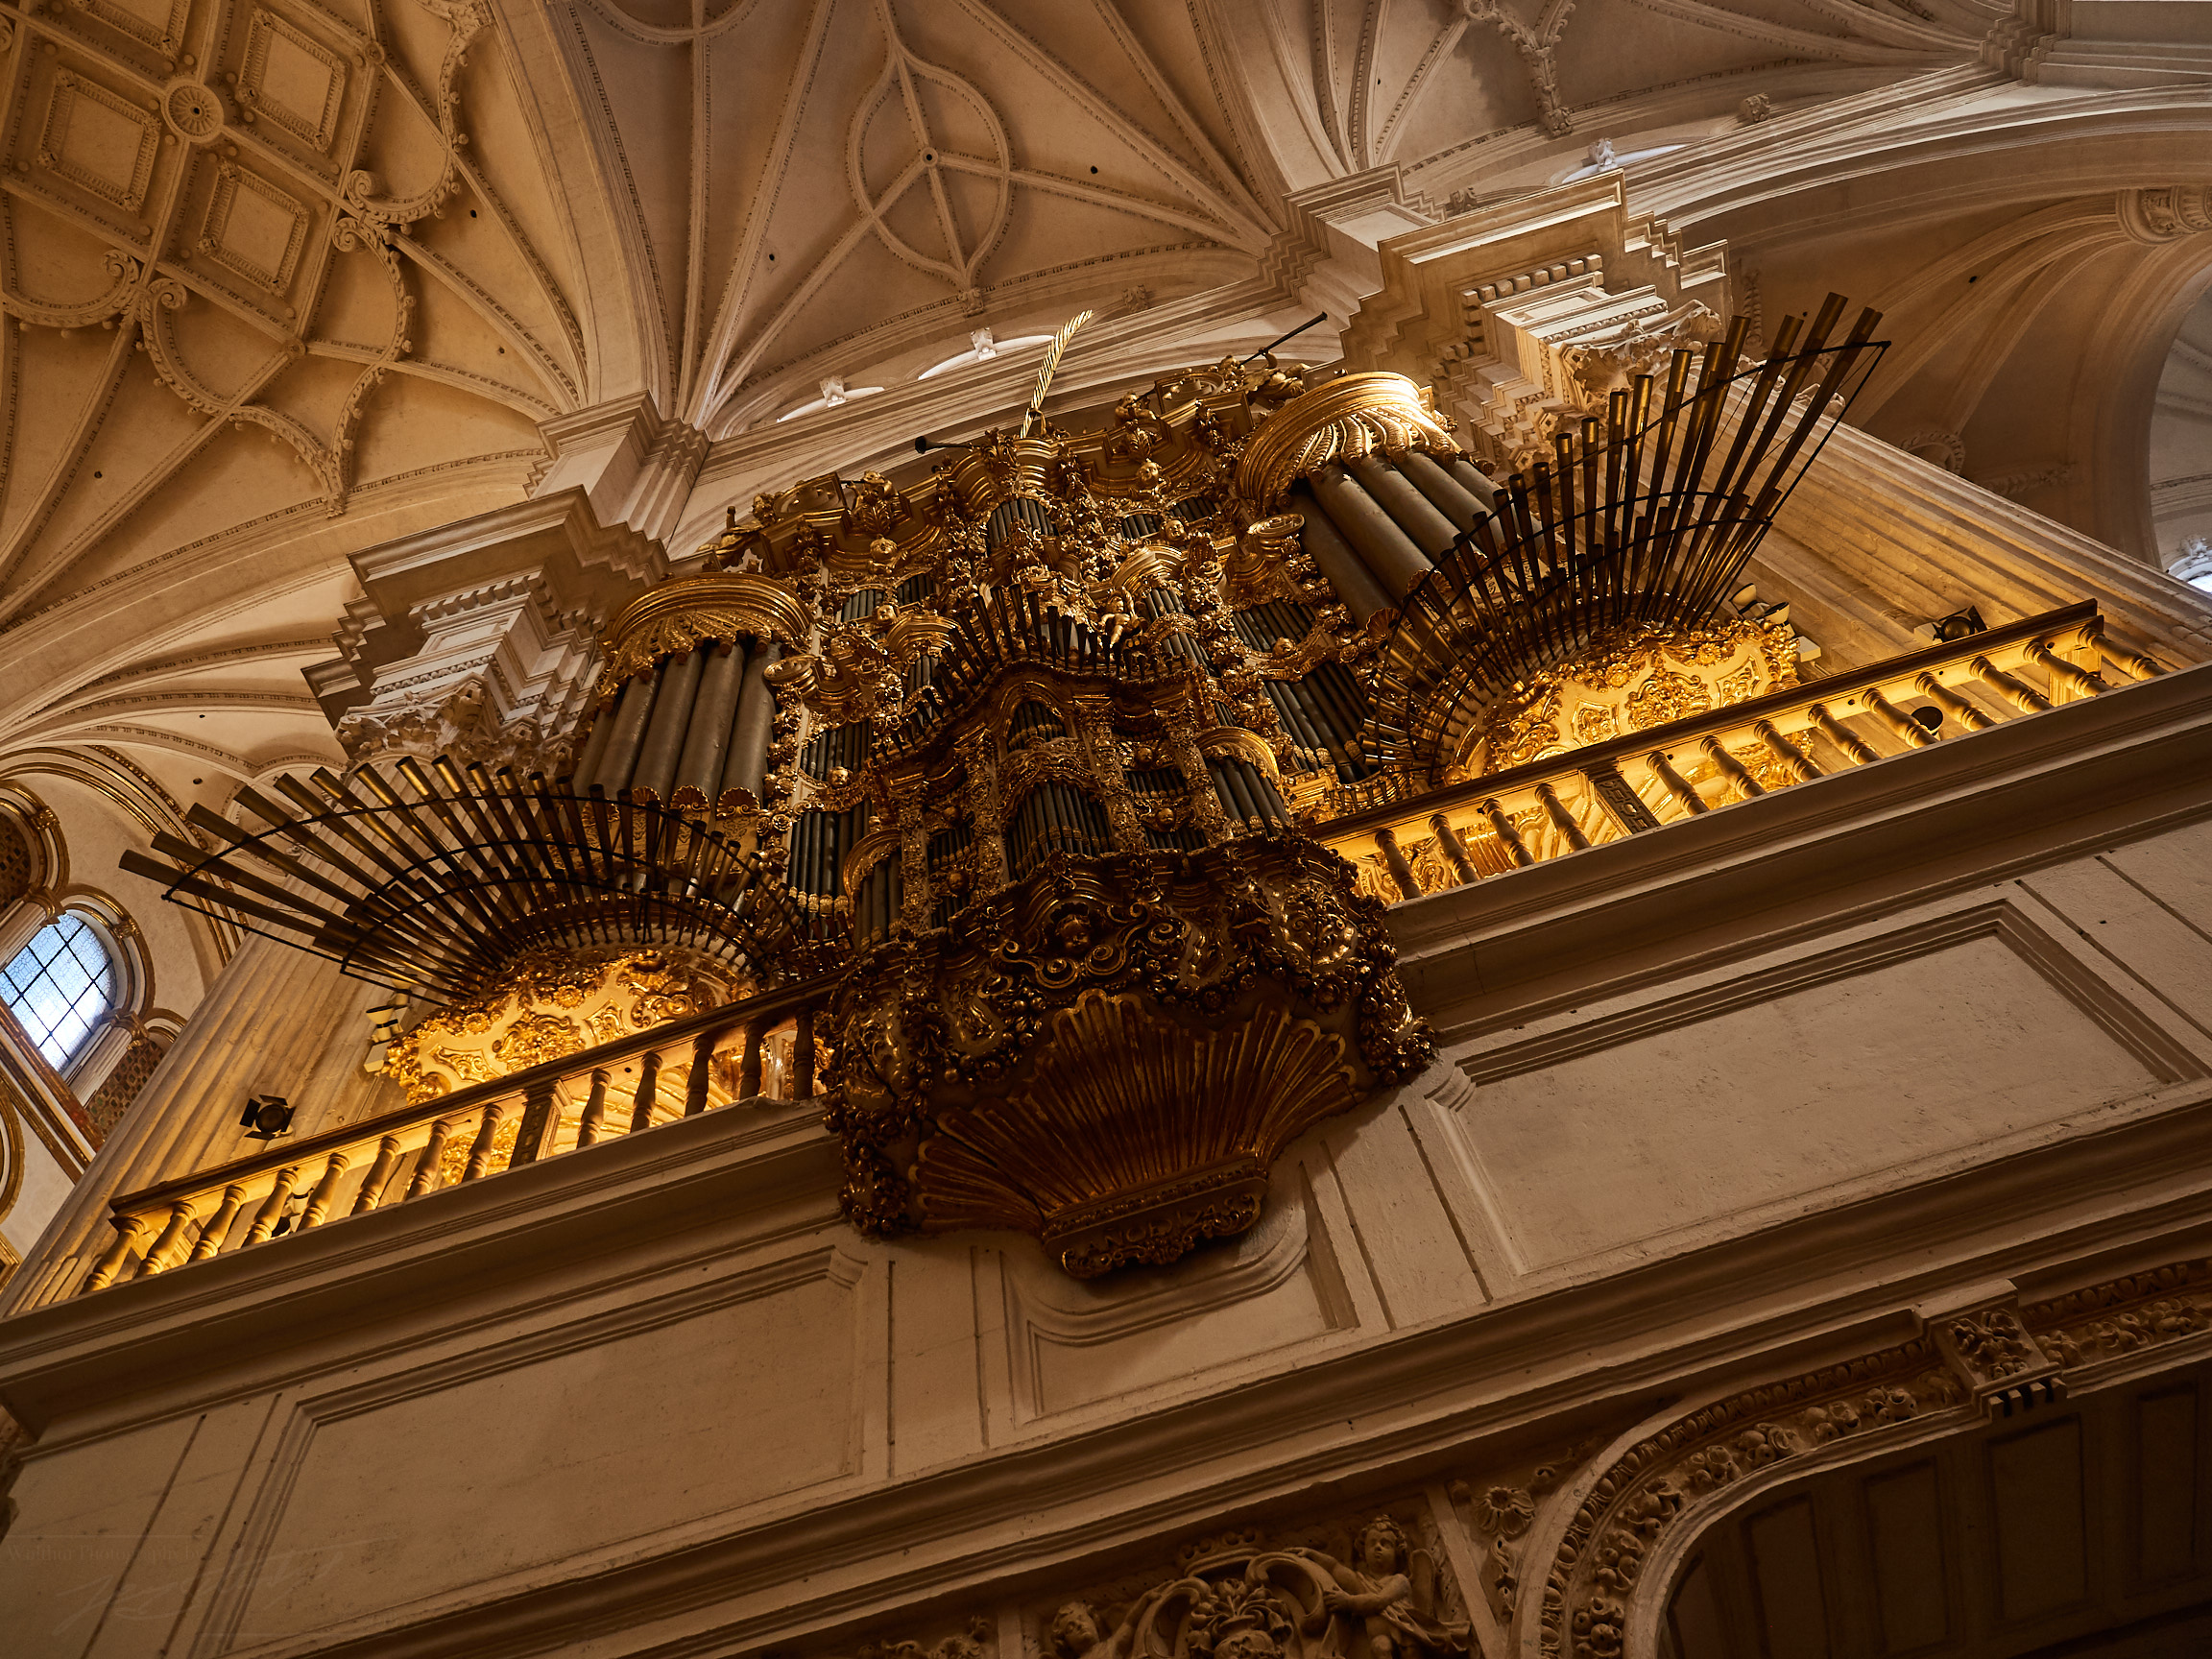 Orgel in der Kathedrale